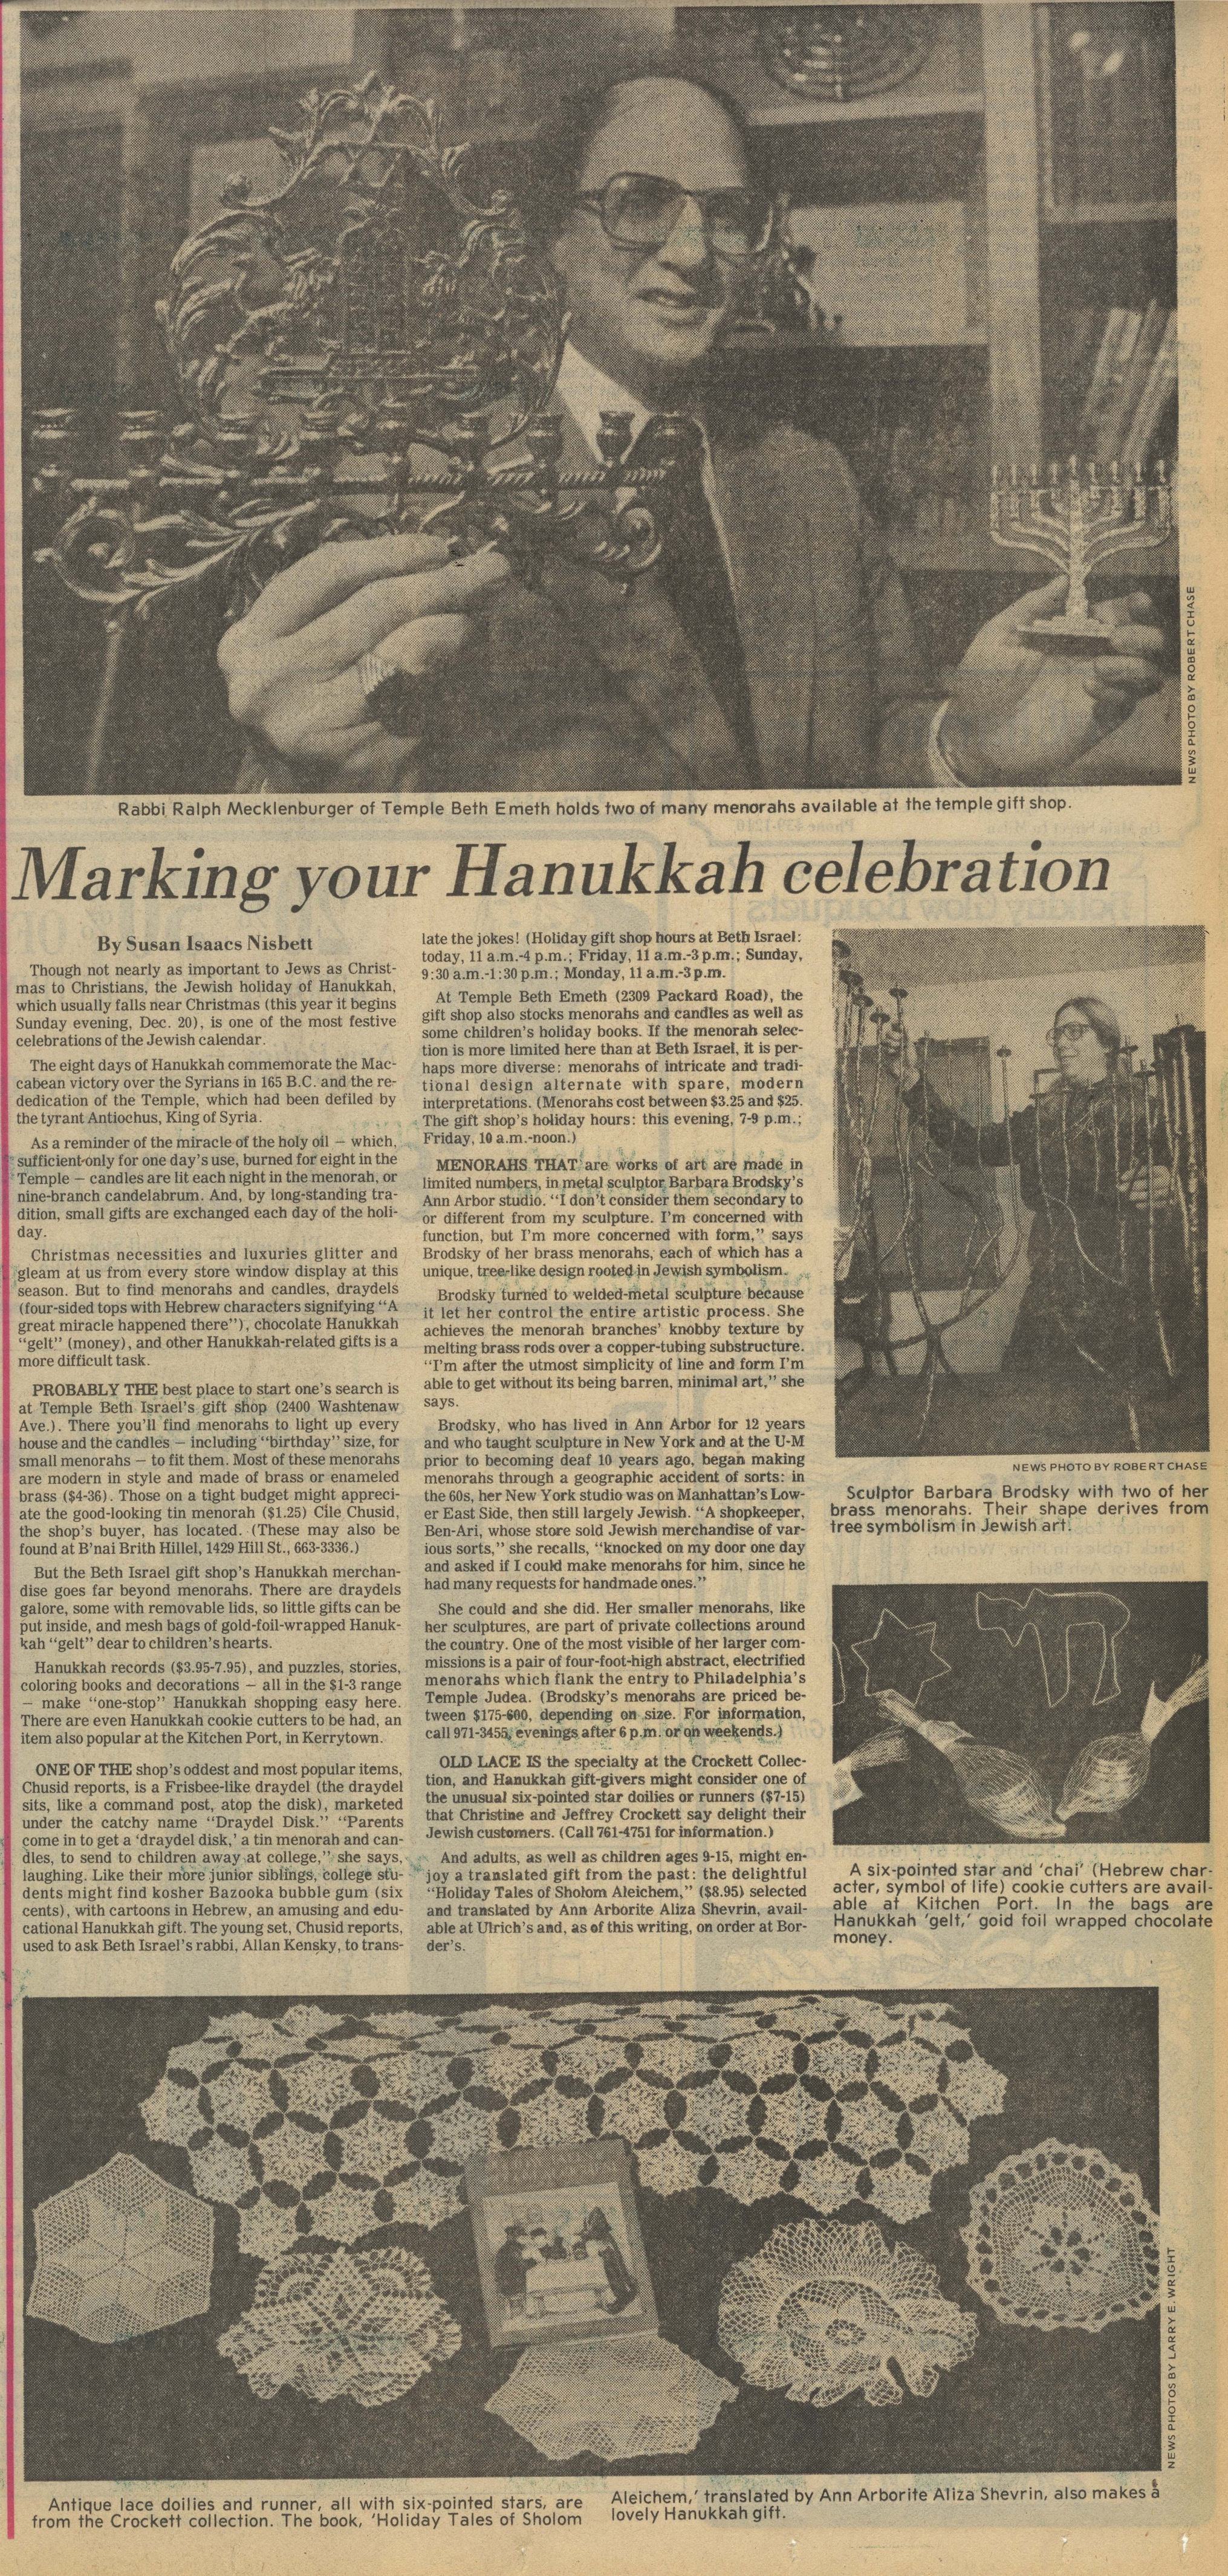 Marking Your Hanukkah Celebration image